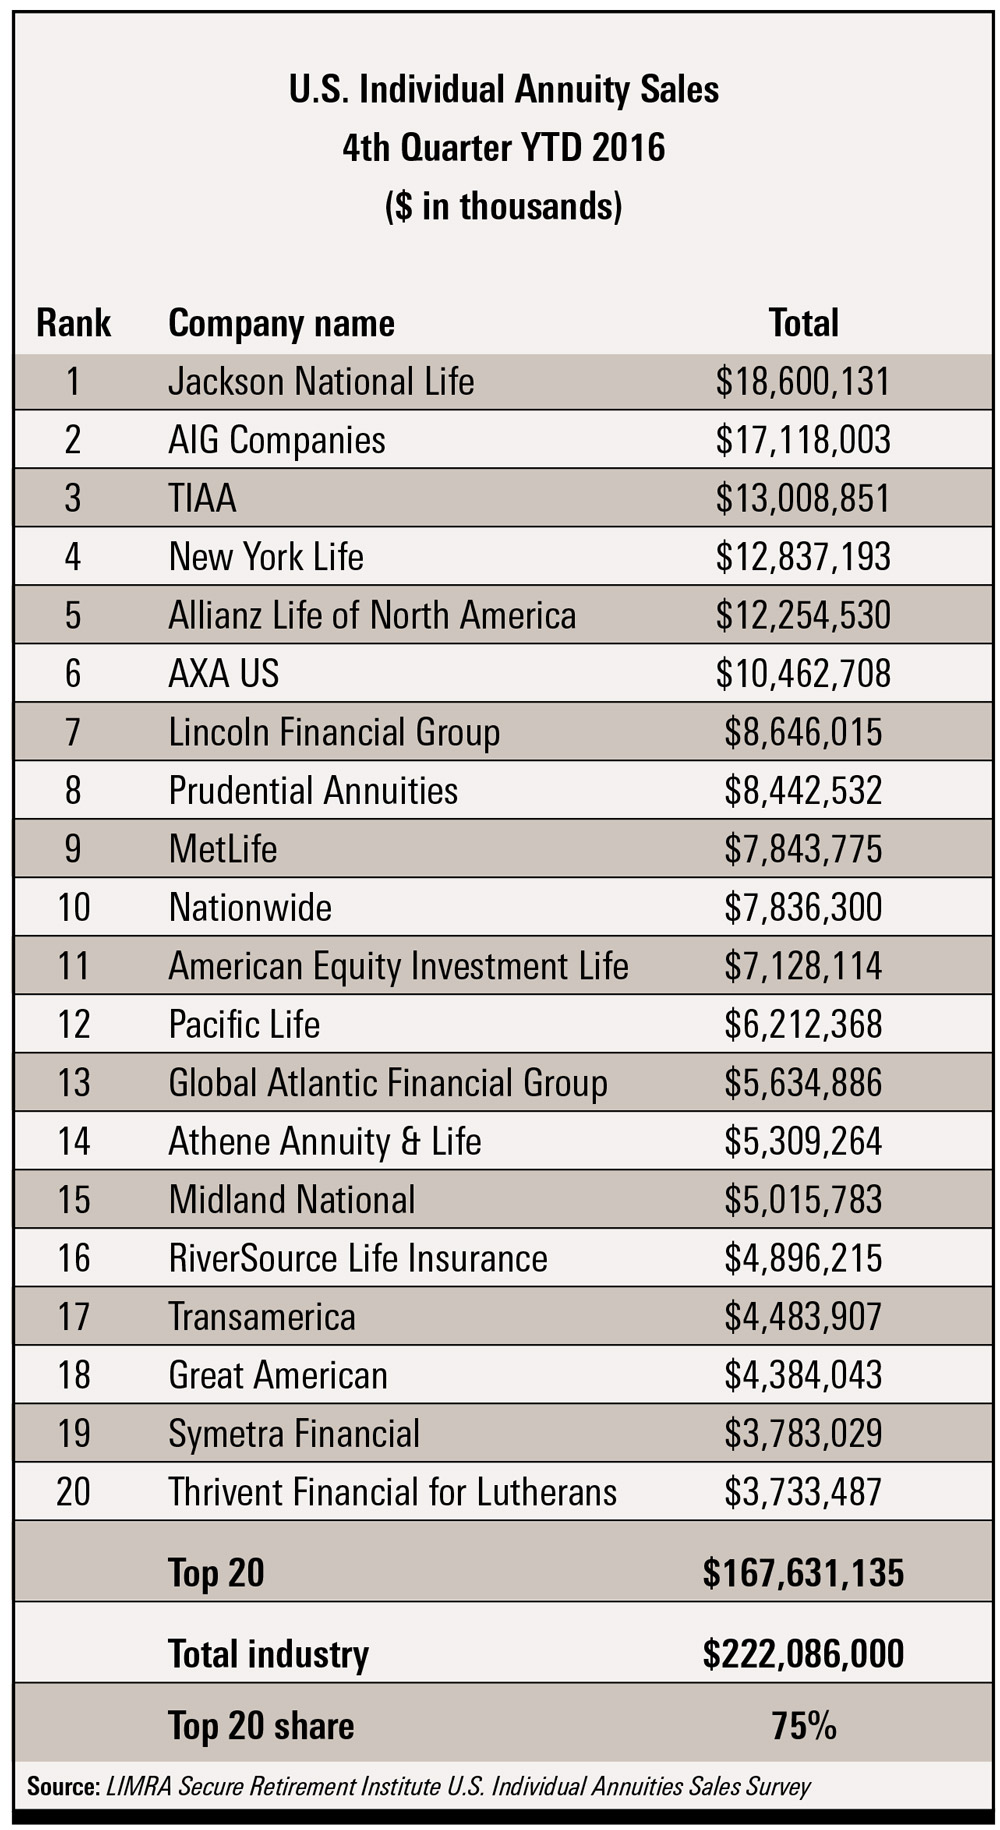 Top 20 Companies for Total Annuity Sales